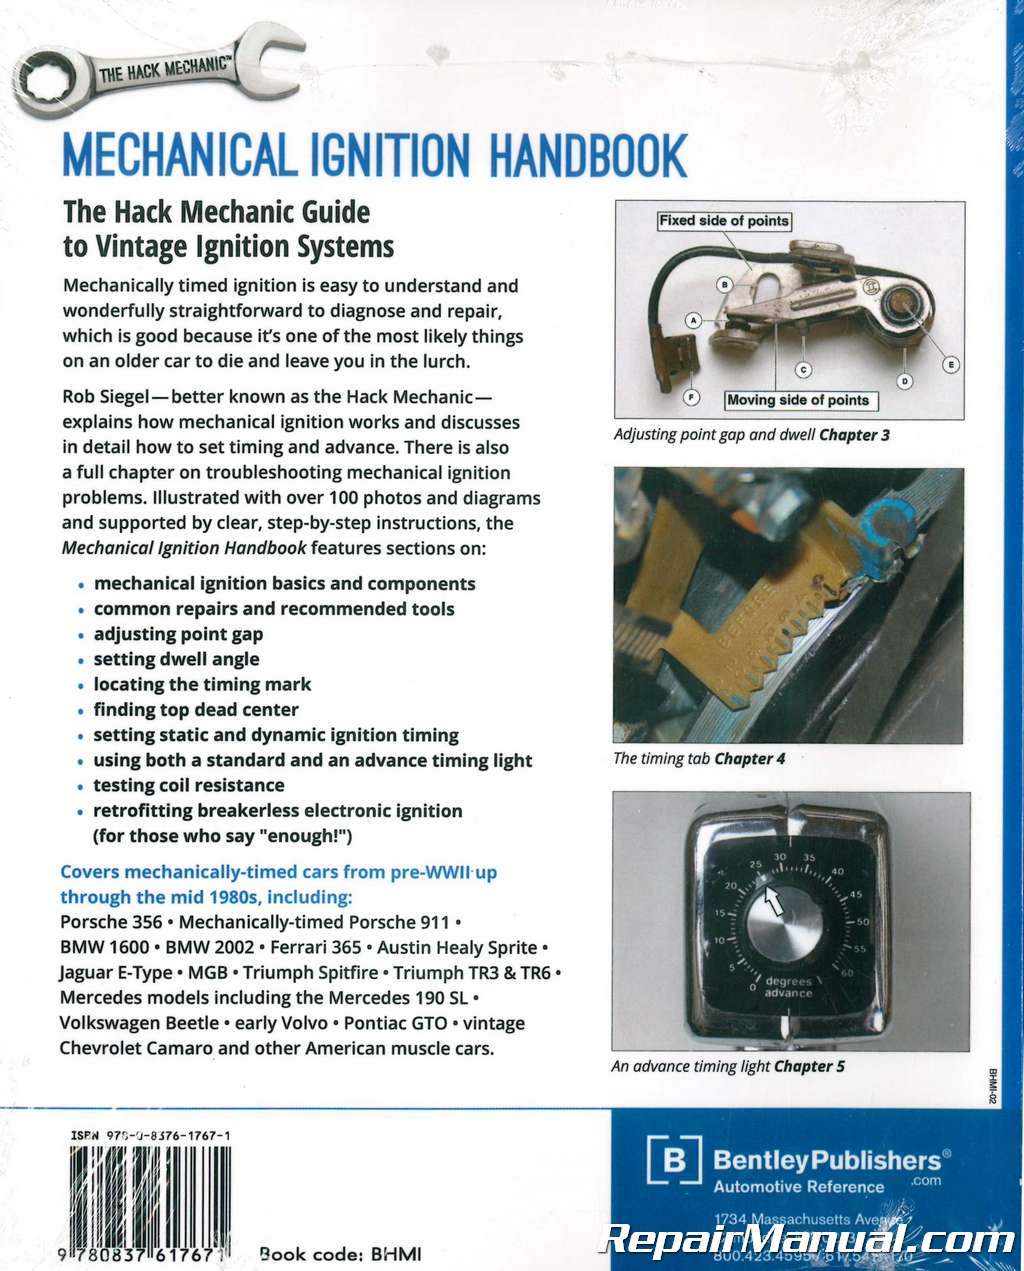 Mechanical Ignition Handbook The Hack Mechanic Guide to Vintage ...